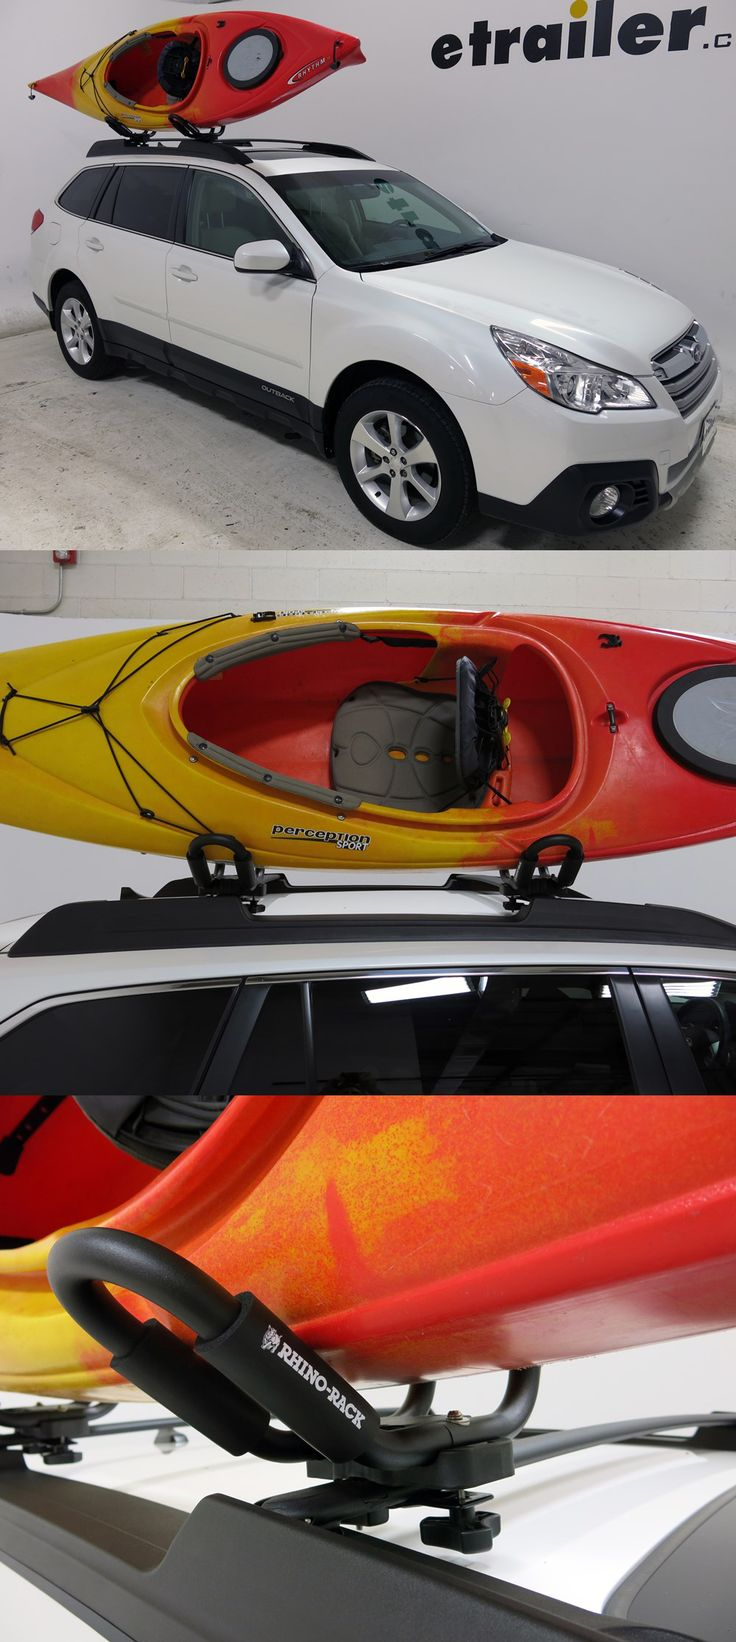 An essential vehicle accessory for the Subaru Outback Wagon and those who love kayaking! These J-Style Kayak Carriers are made to transport 1 kayak safely and securely on the roof rack!